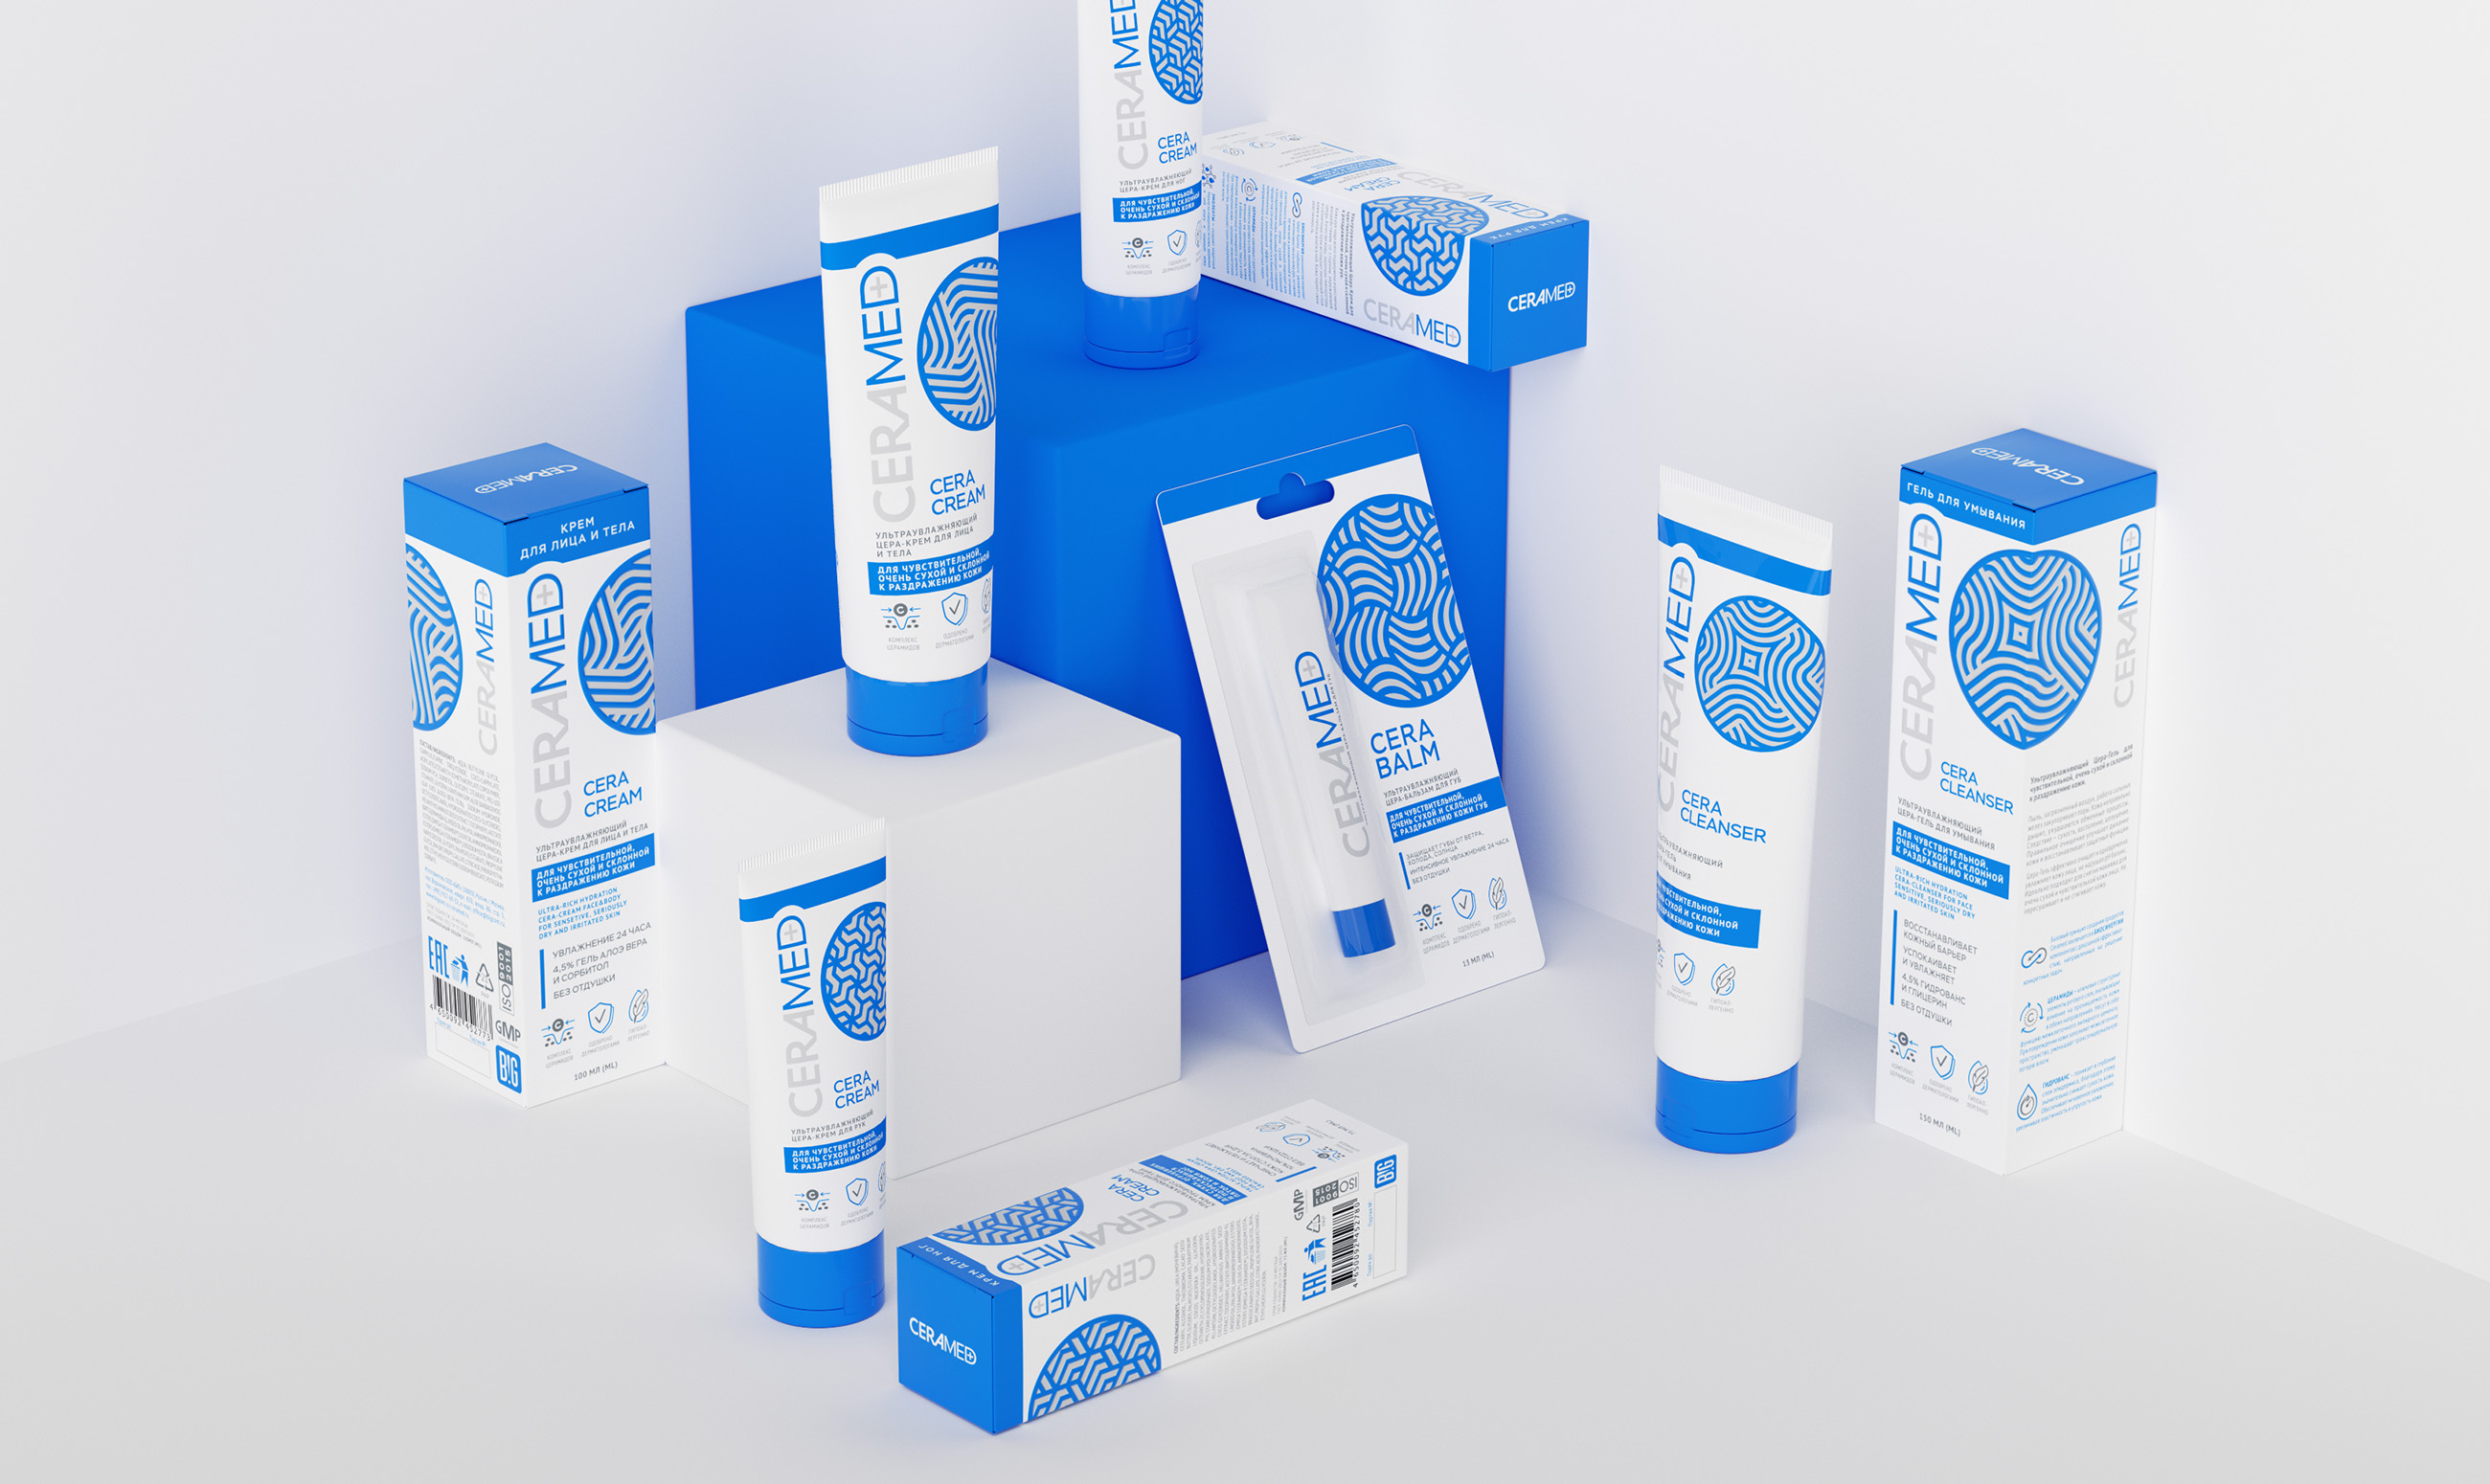 Ceramed Moisturizing Cosmetics Brand and Packaging Designed by Clёver Branding